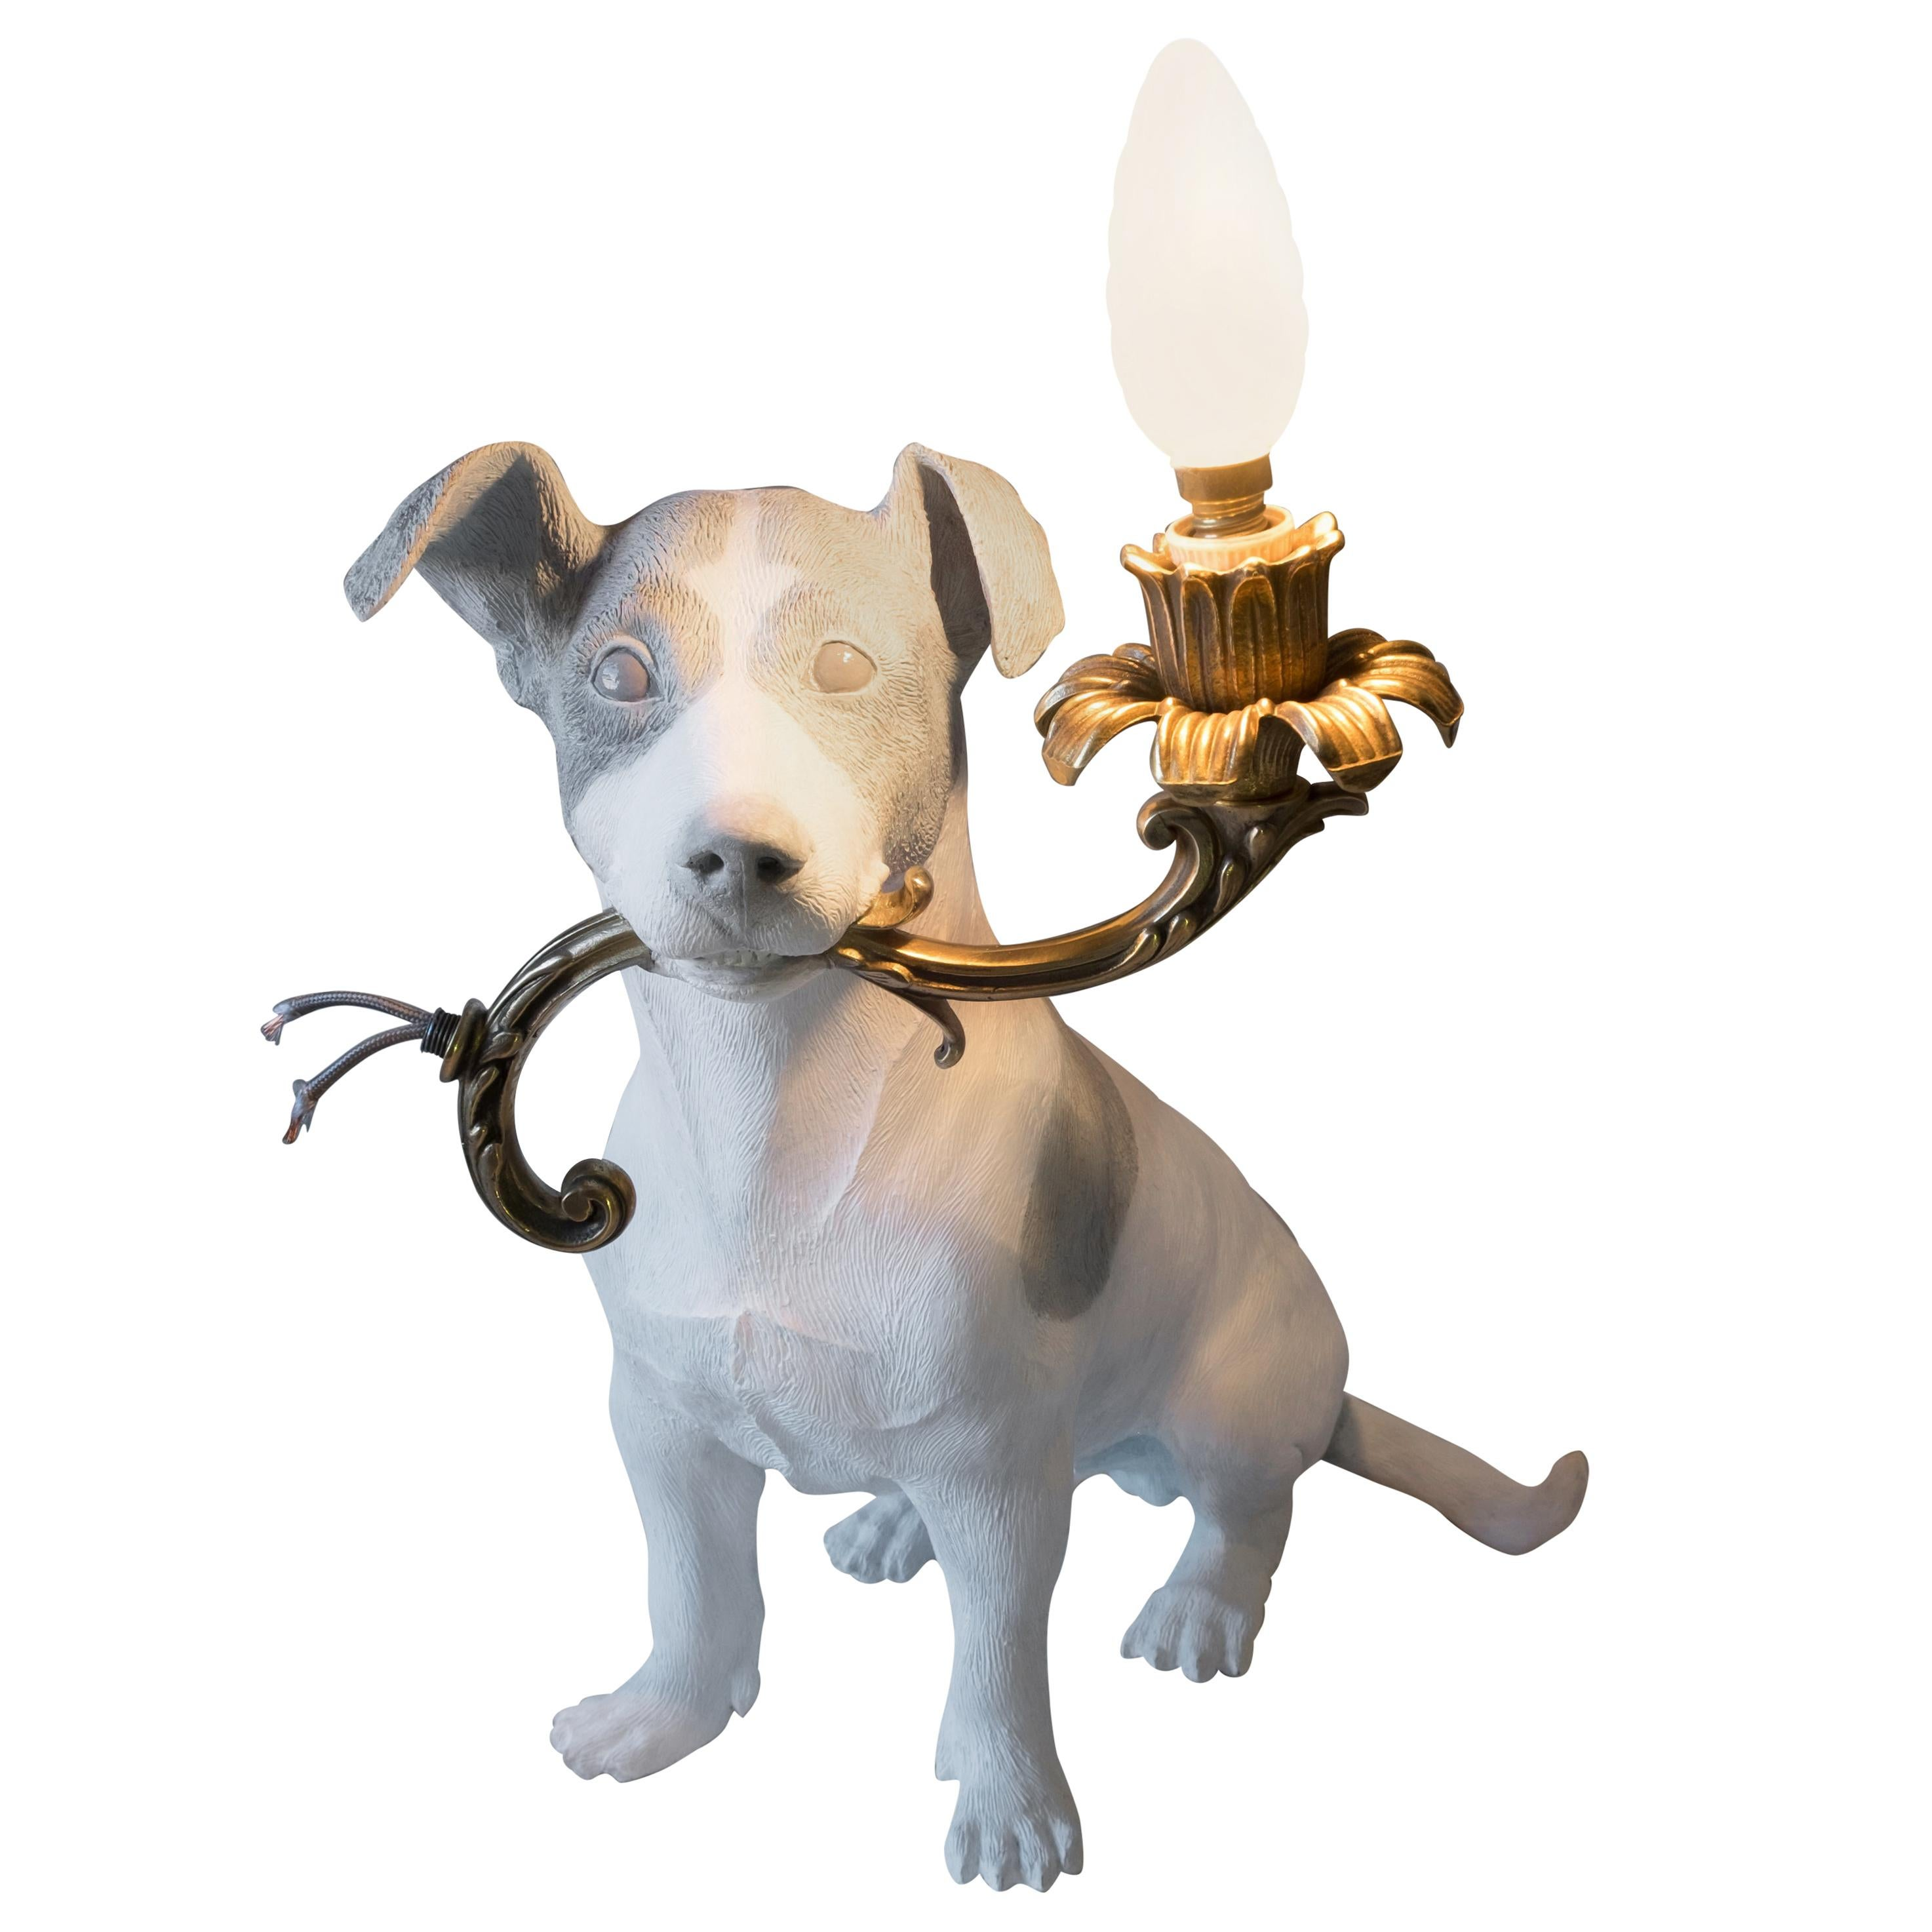 21st Century Jack Russell Dog Lamp Light by Marcantonio, White Painted Bronze